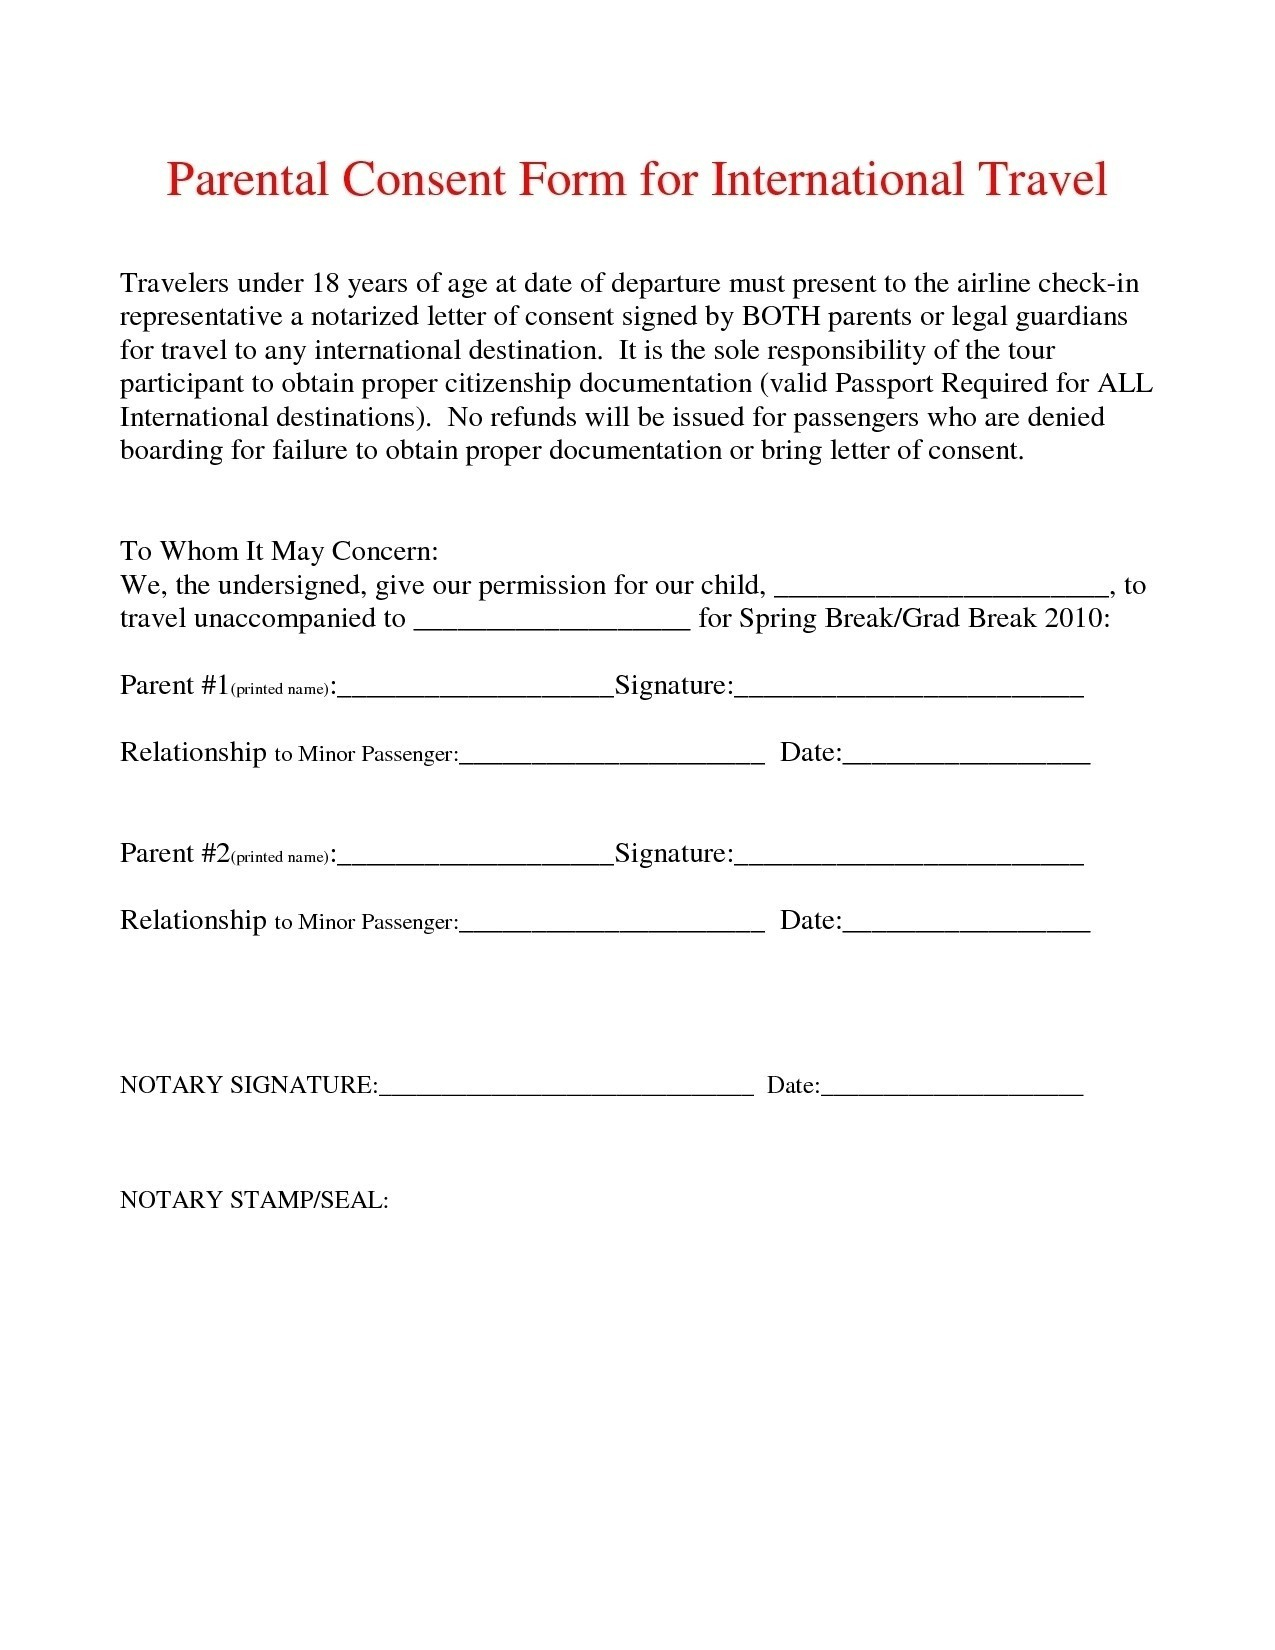 Notarized Letter Template for Child Travel - Sample Permission Letter to Travel Best Notarized Letter